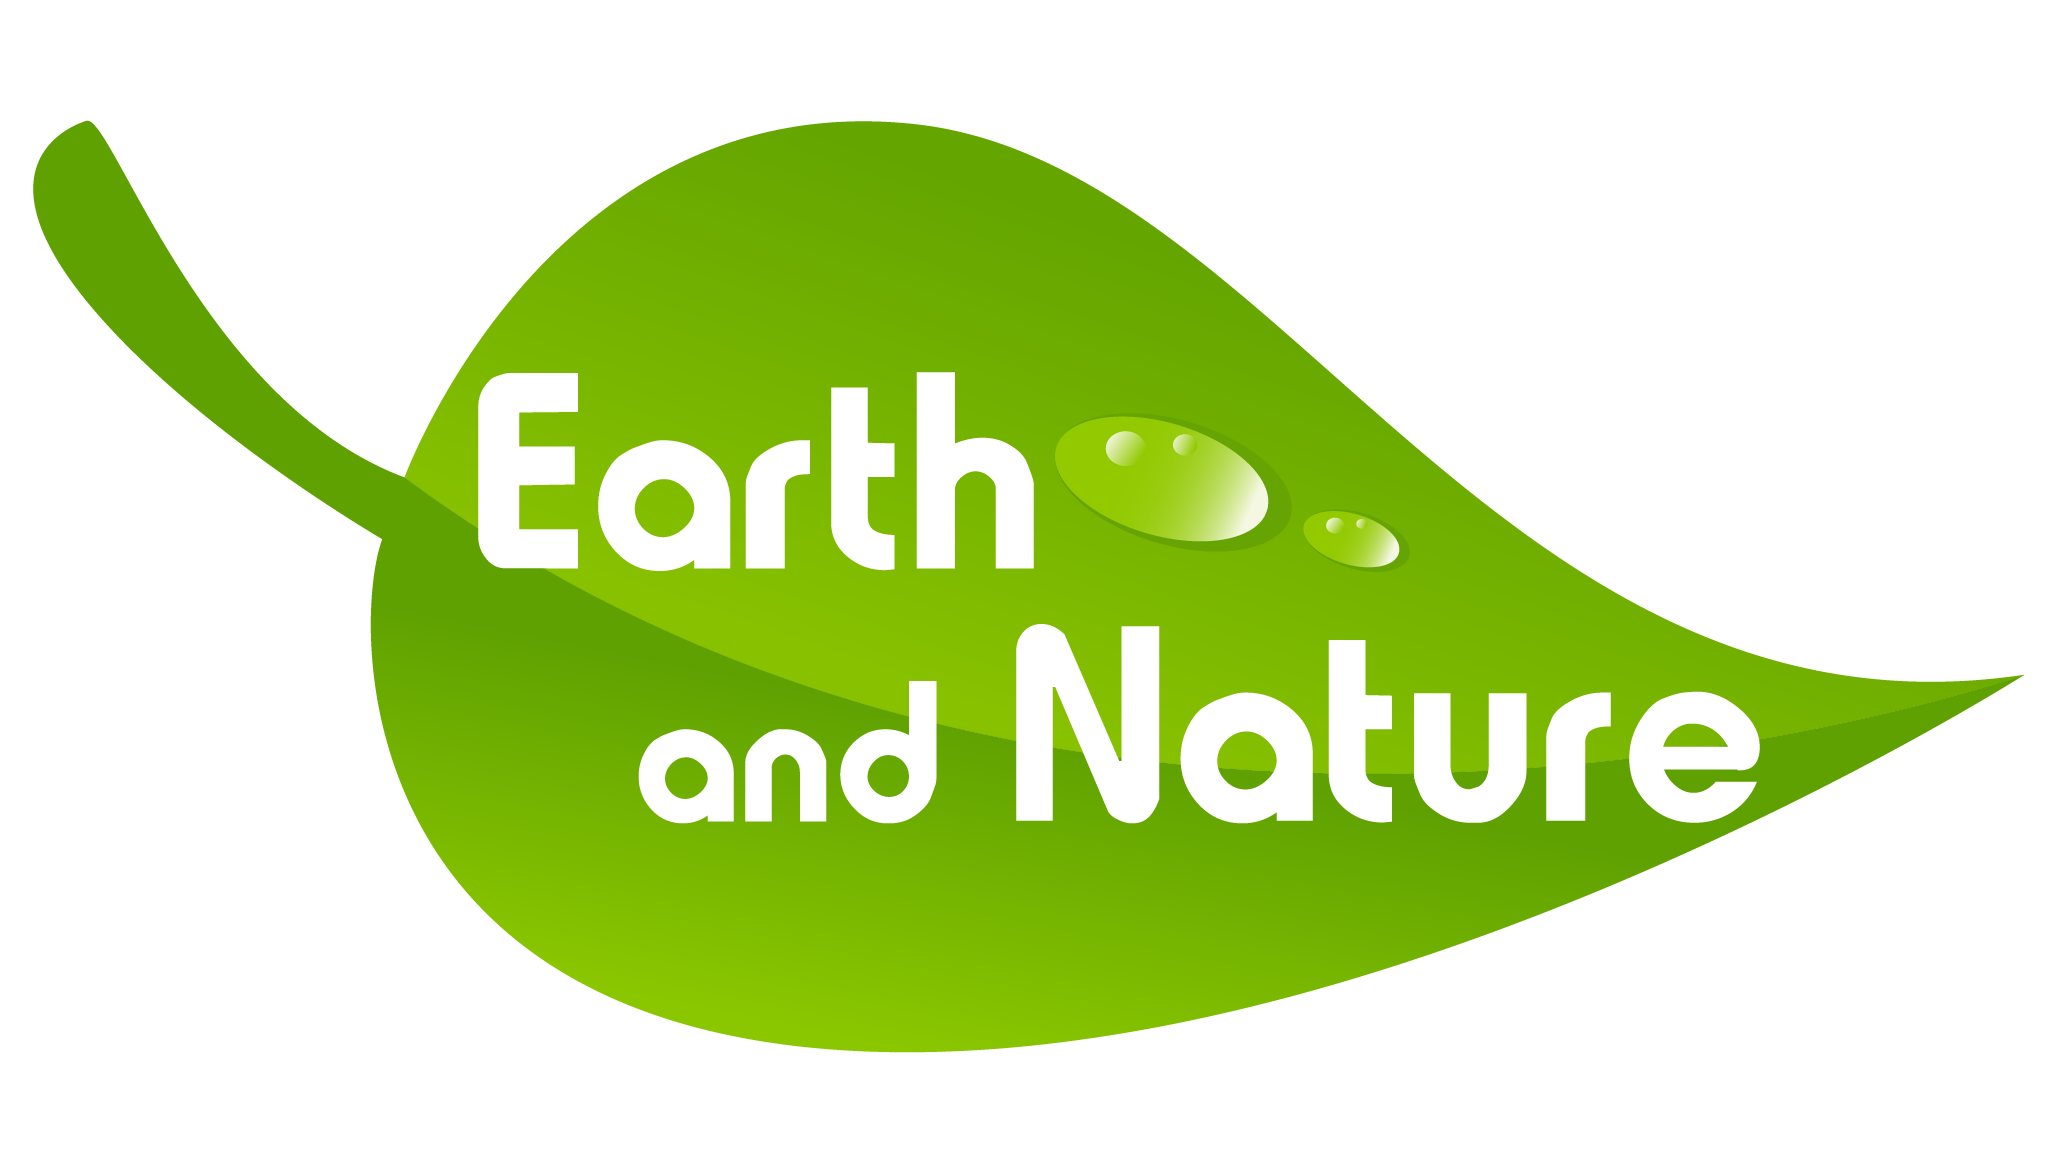 earth and nature emblem #8626